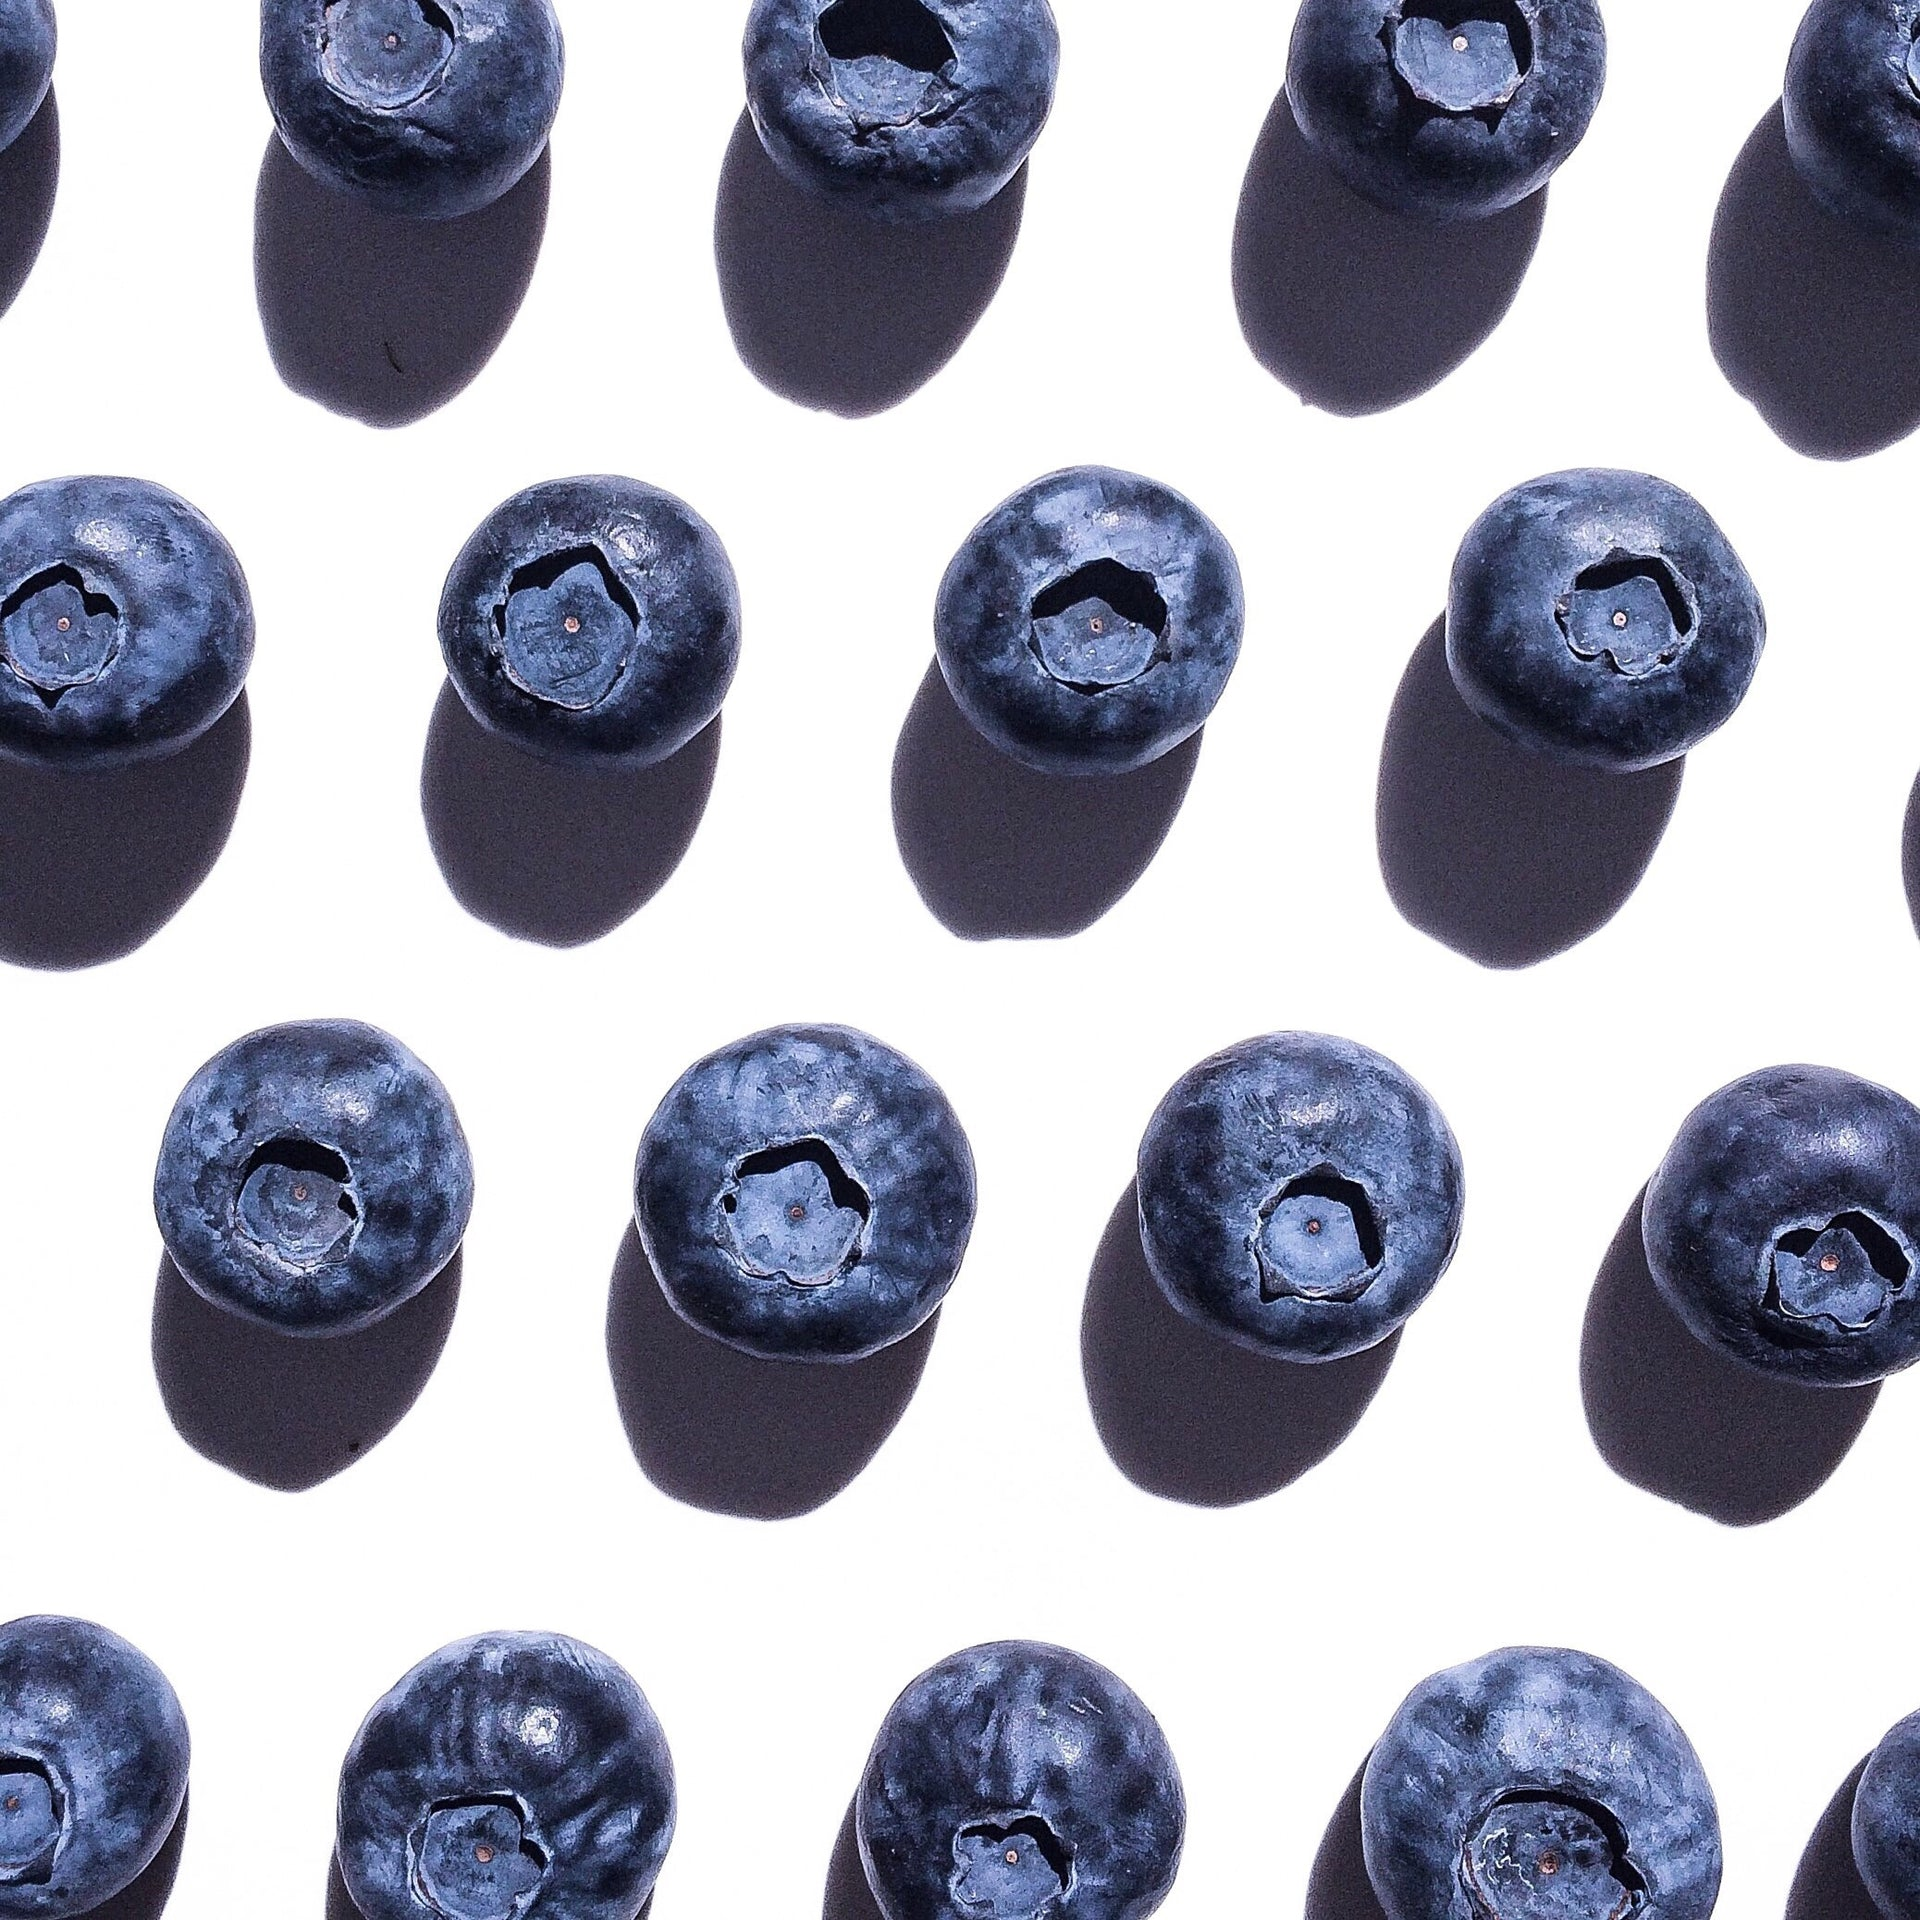 Benefits in Eating Blueberries for Diabetes